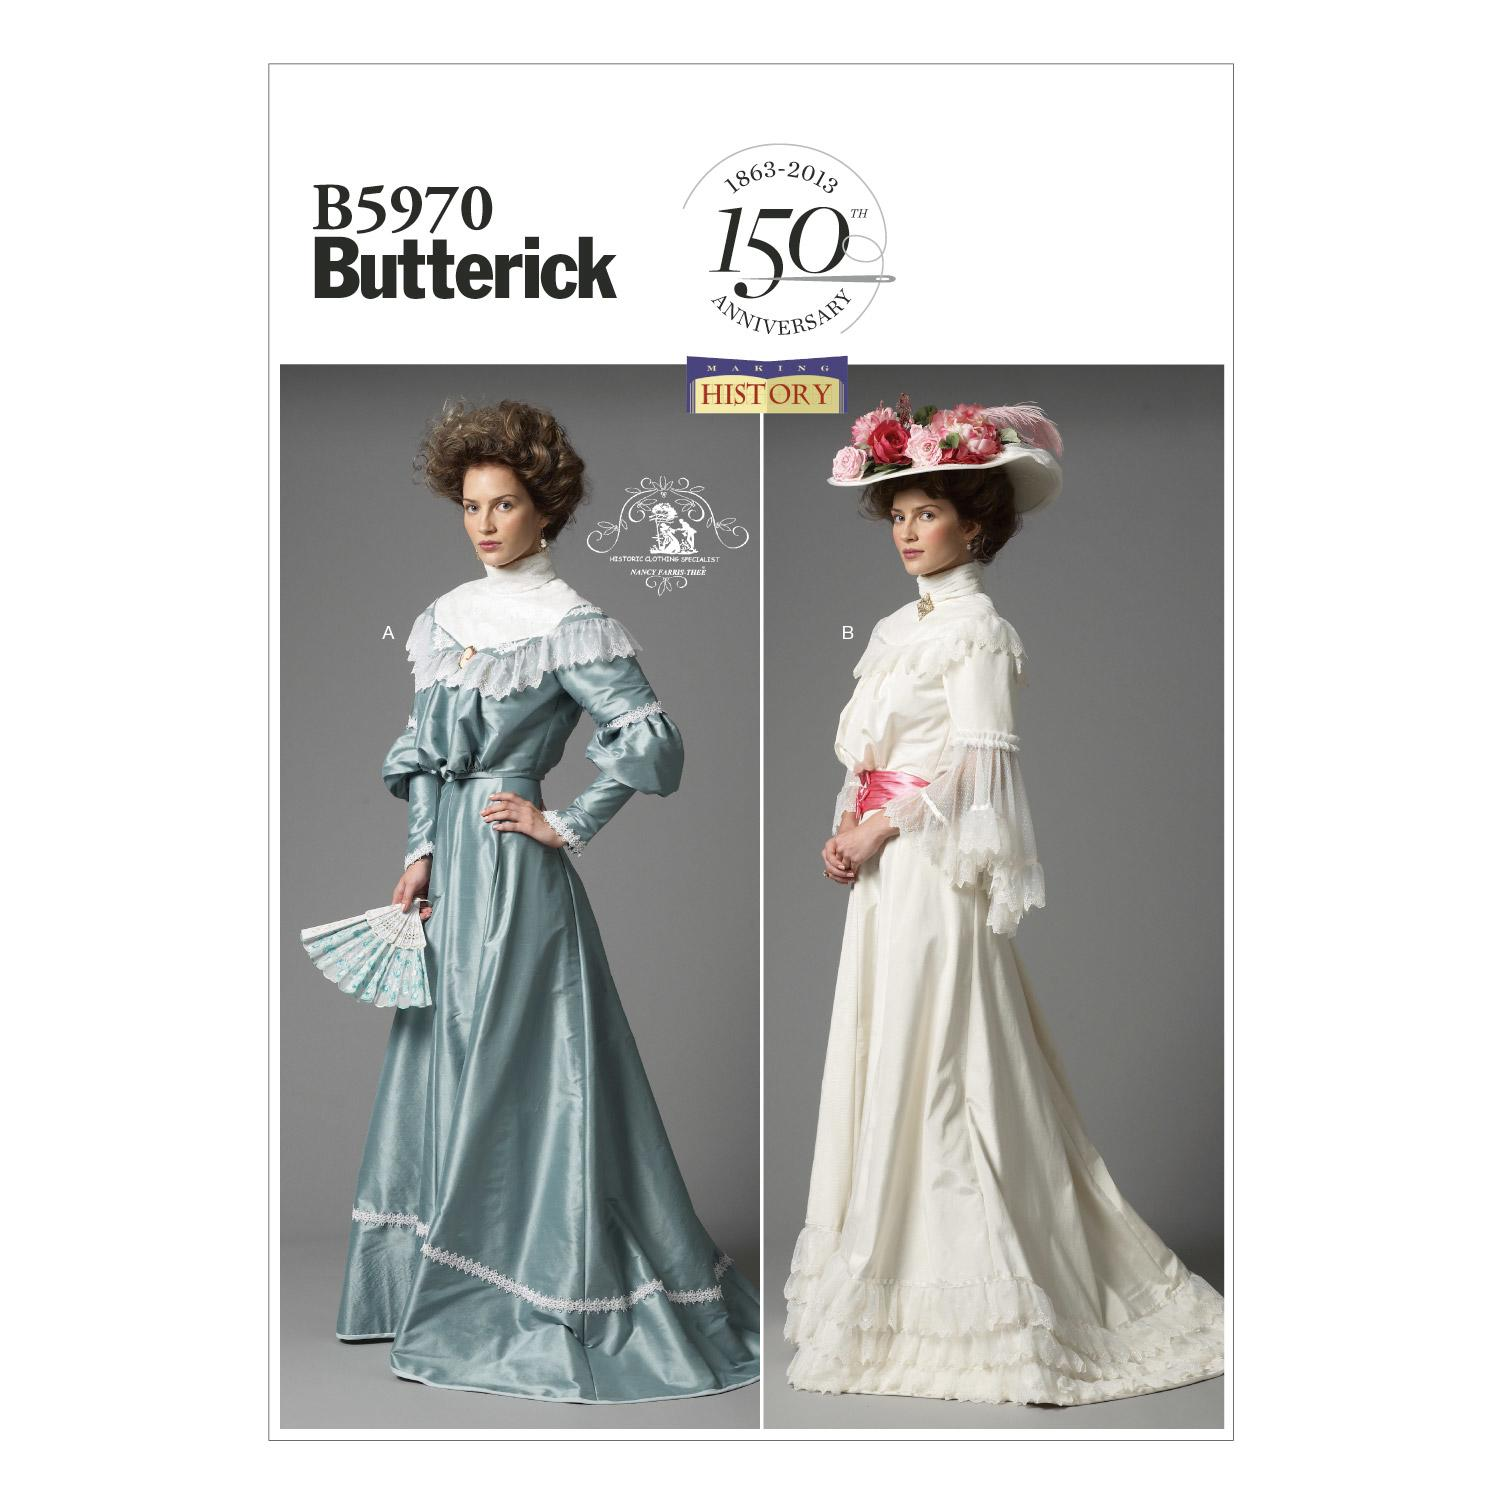 Butterick B5970 Misses' Top and Skirt